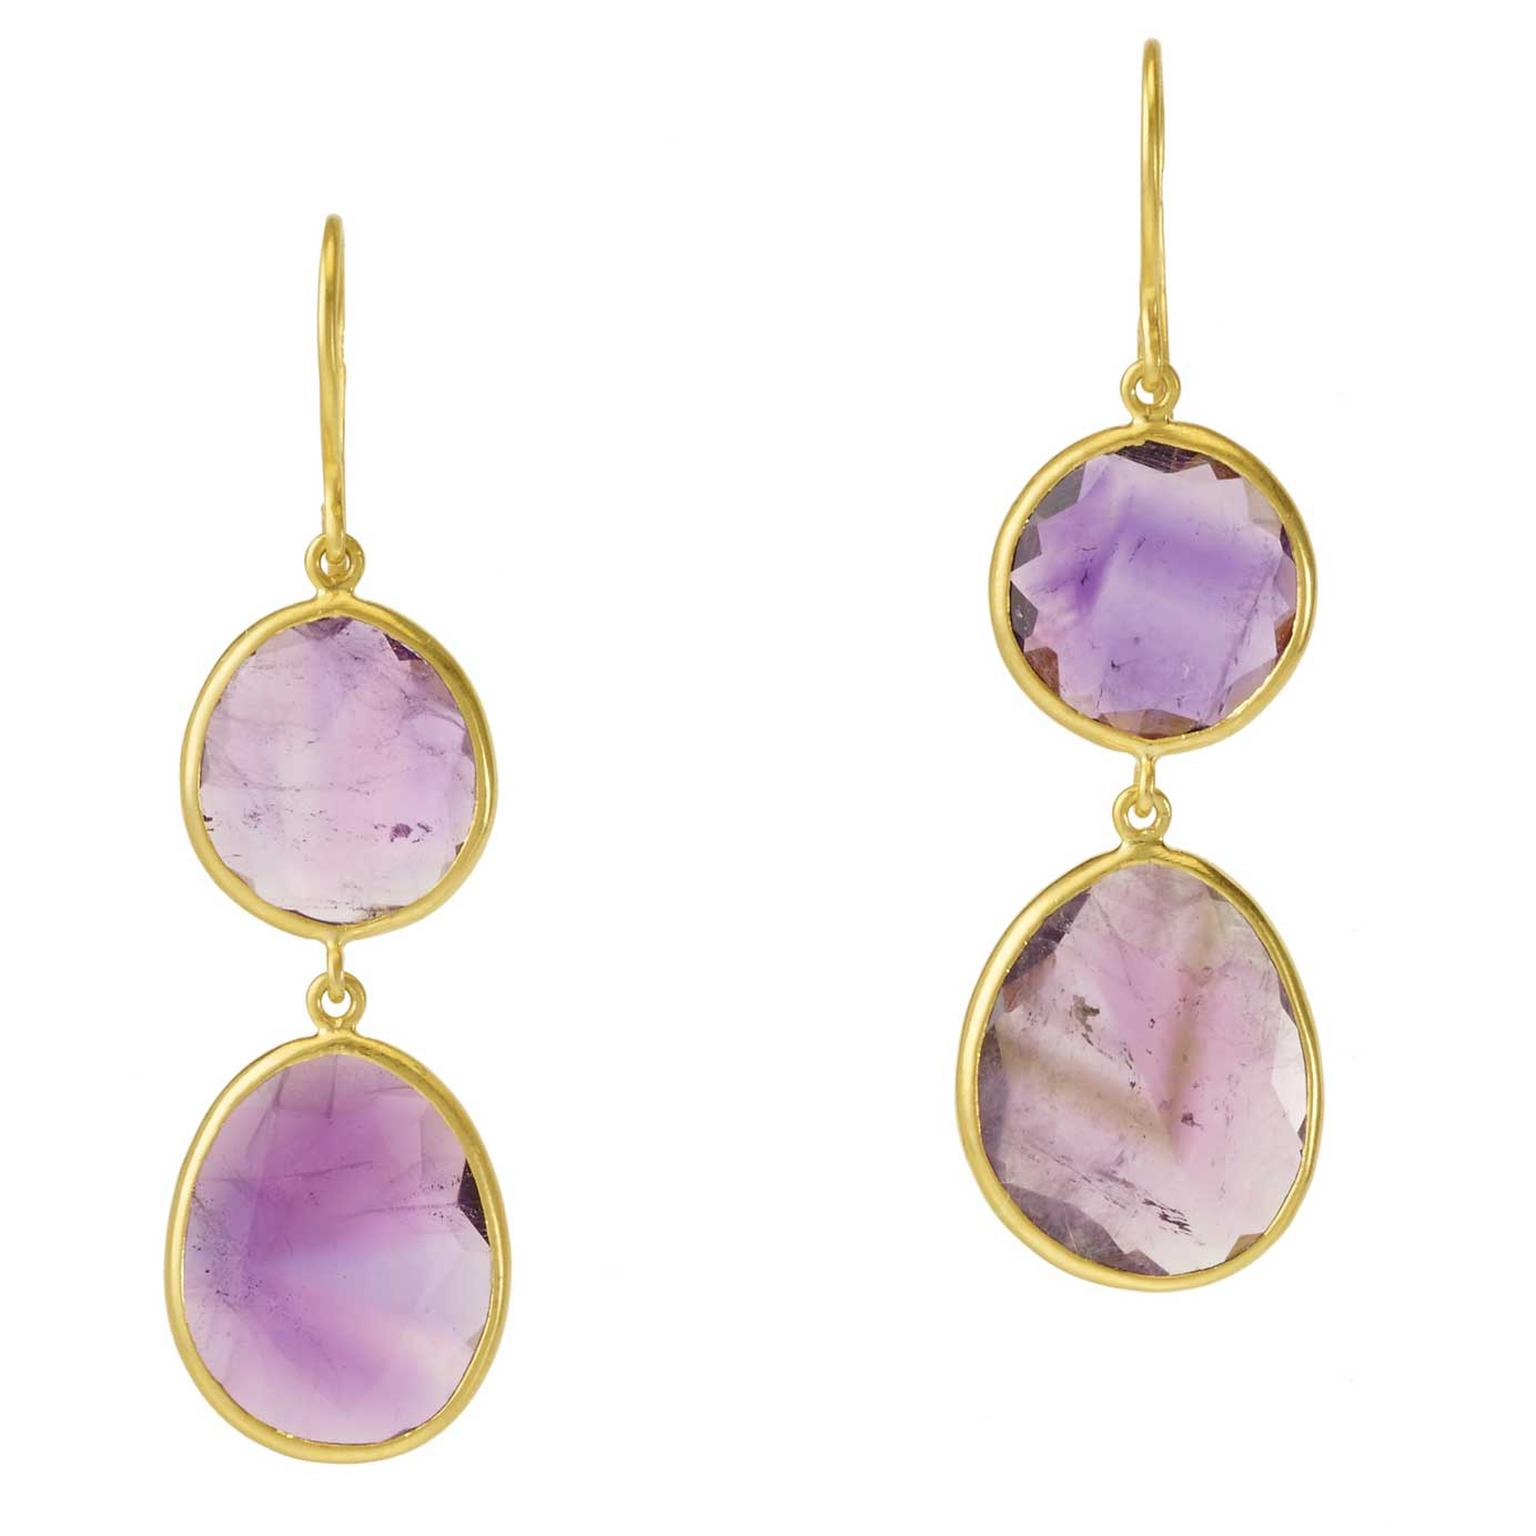 Pippa Small amethyst slice drop earrings